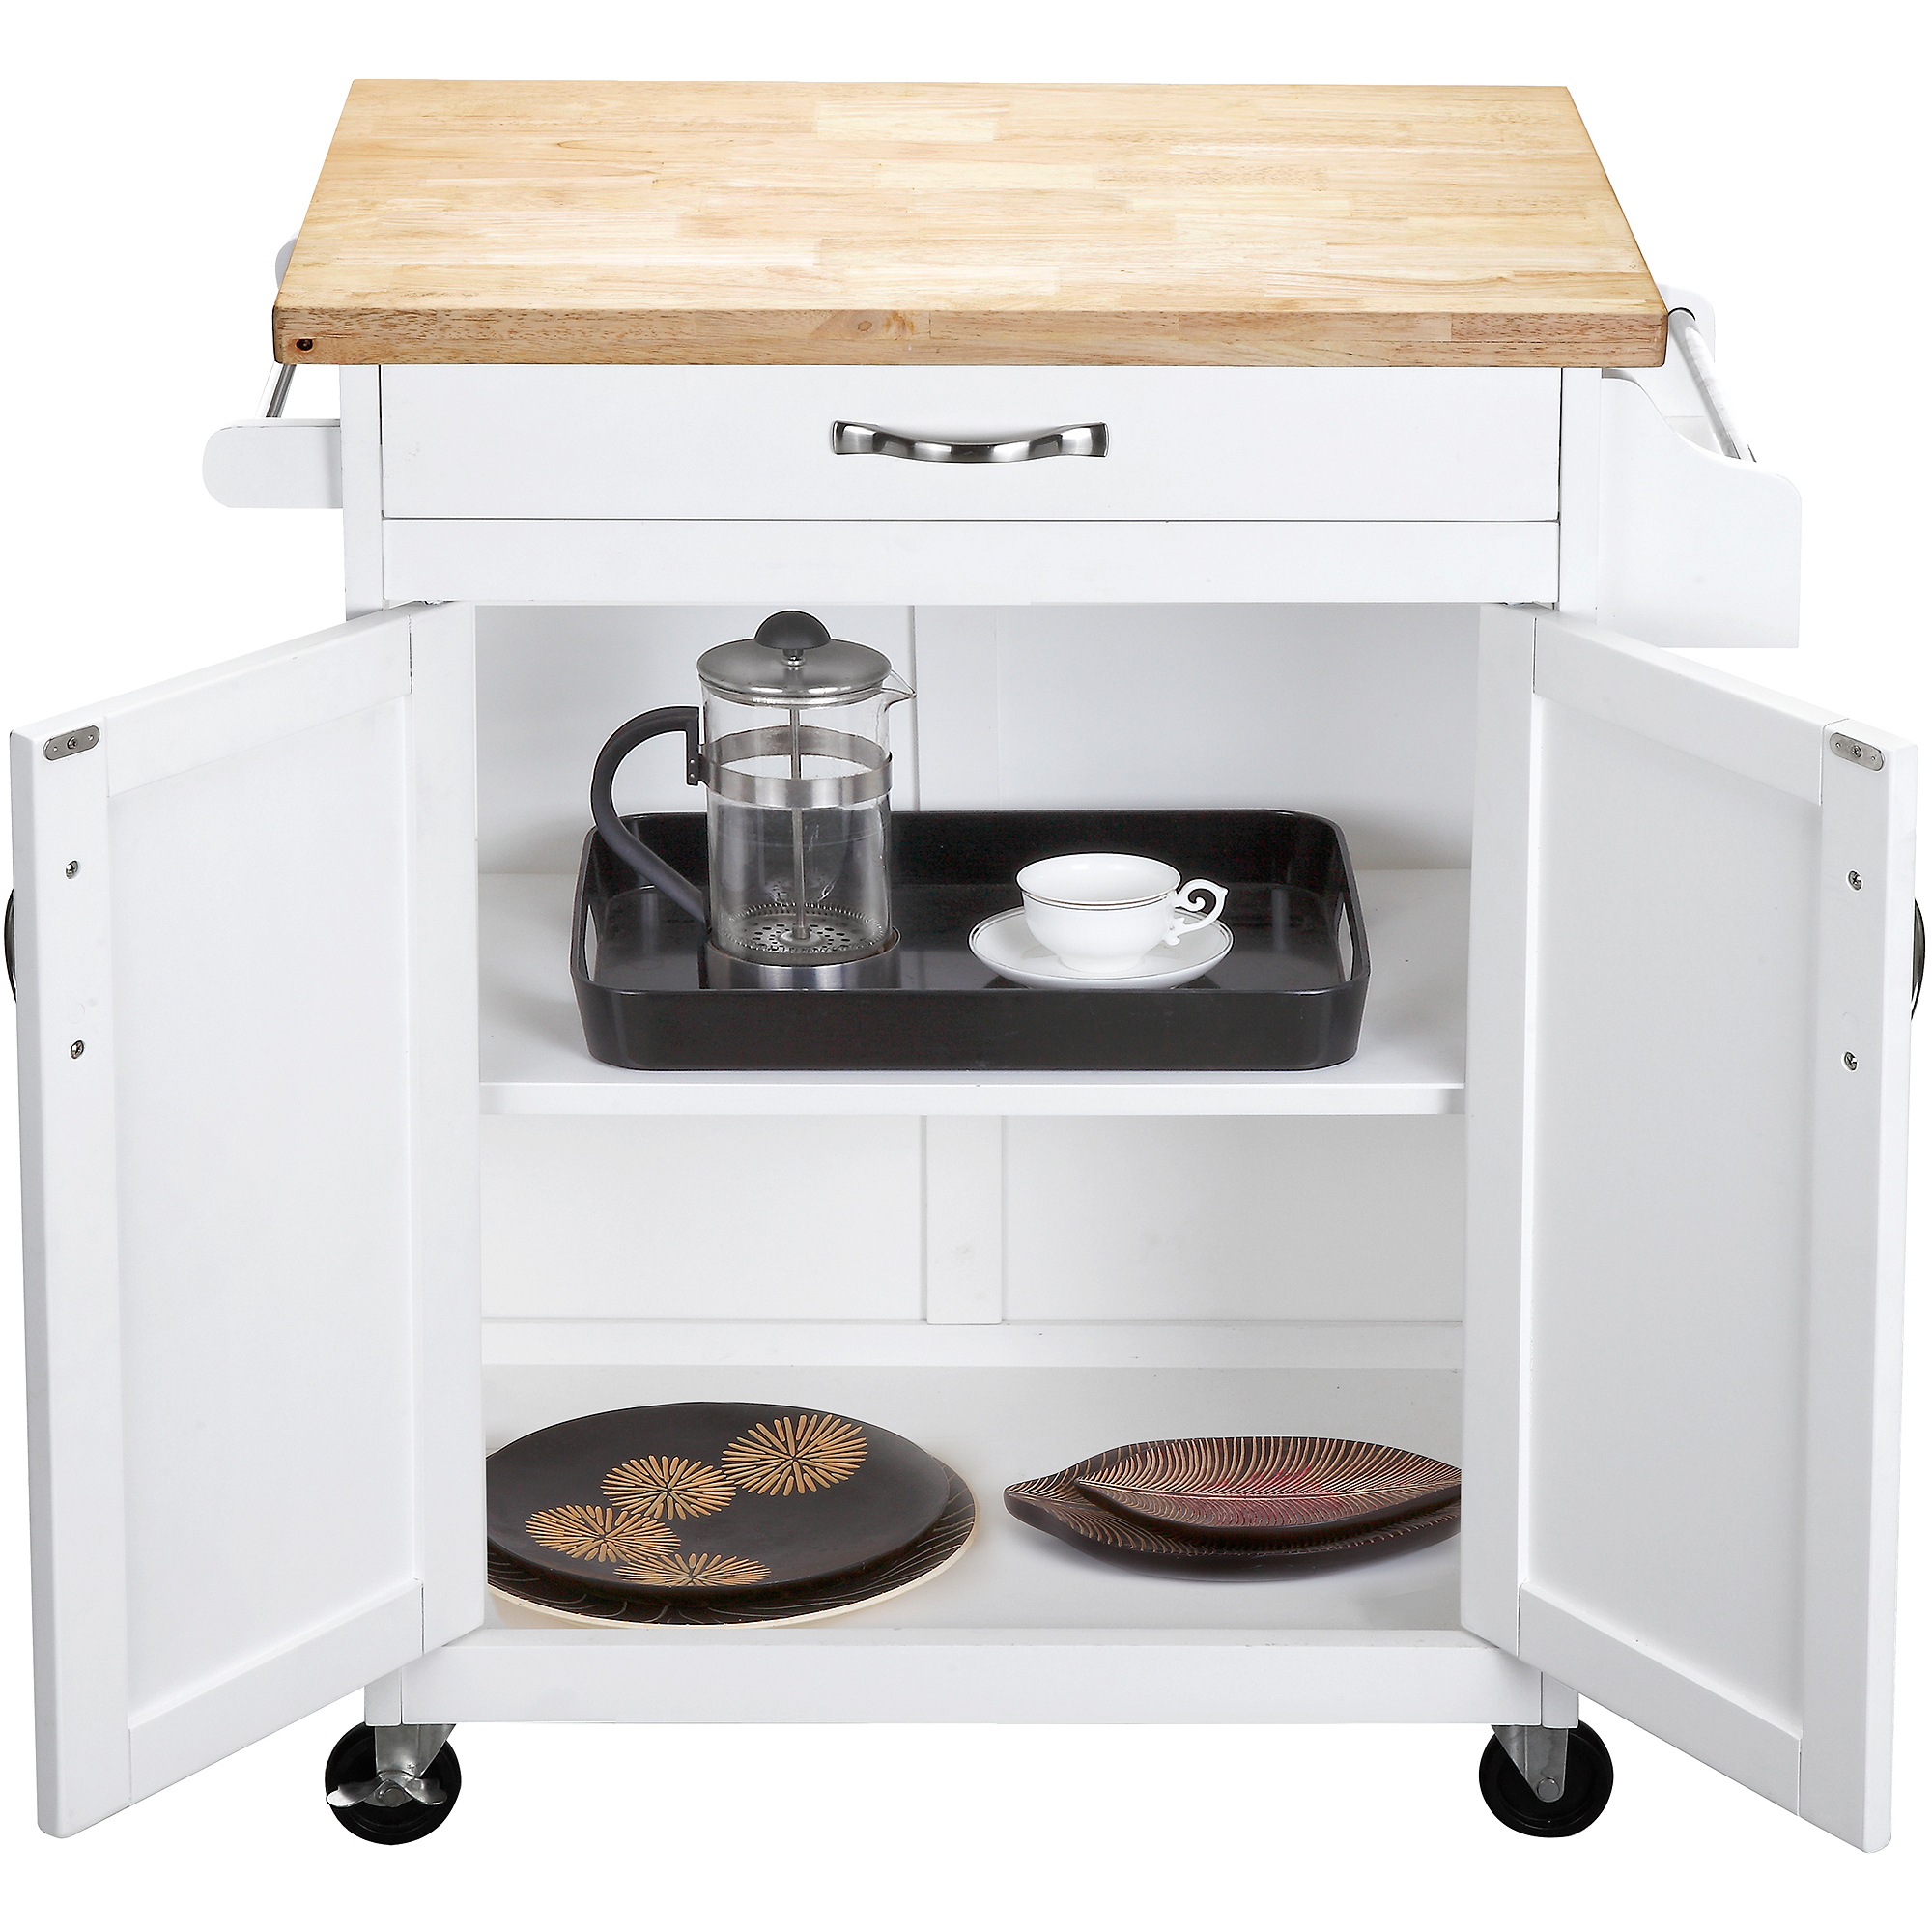 Mainstays Kitchen Island Cart White Walmartcom - Kitchen islands at walmart